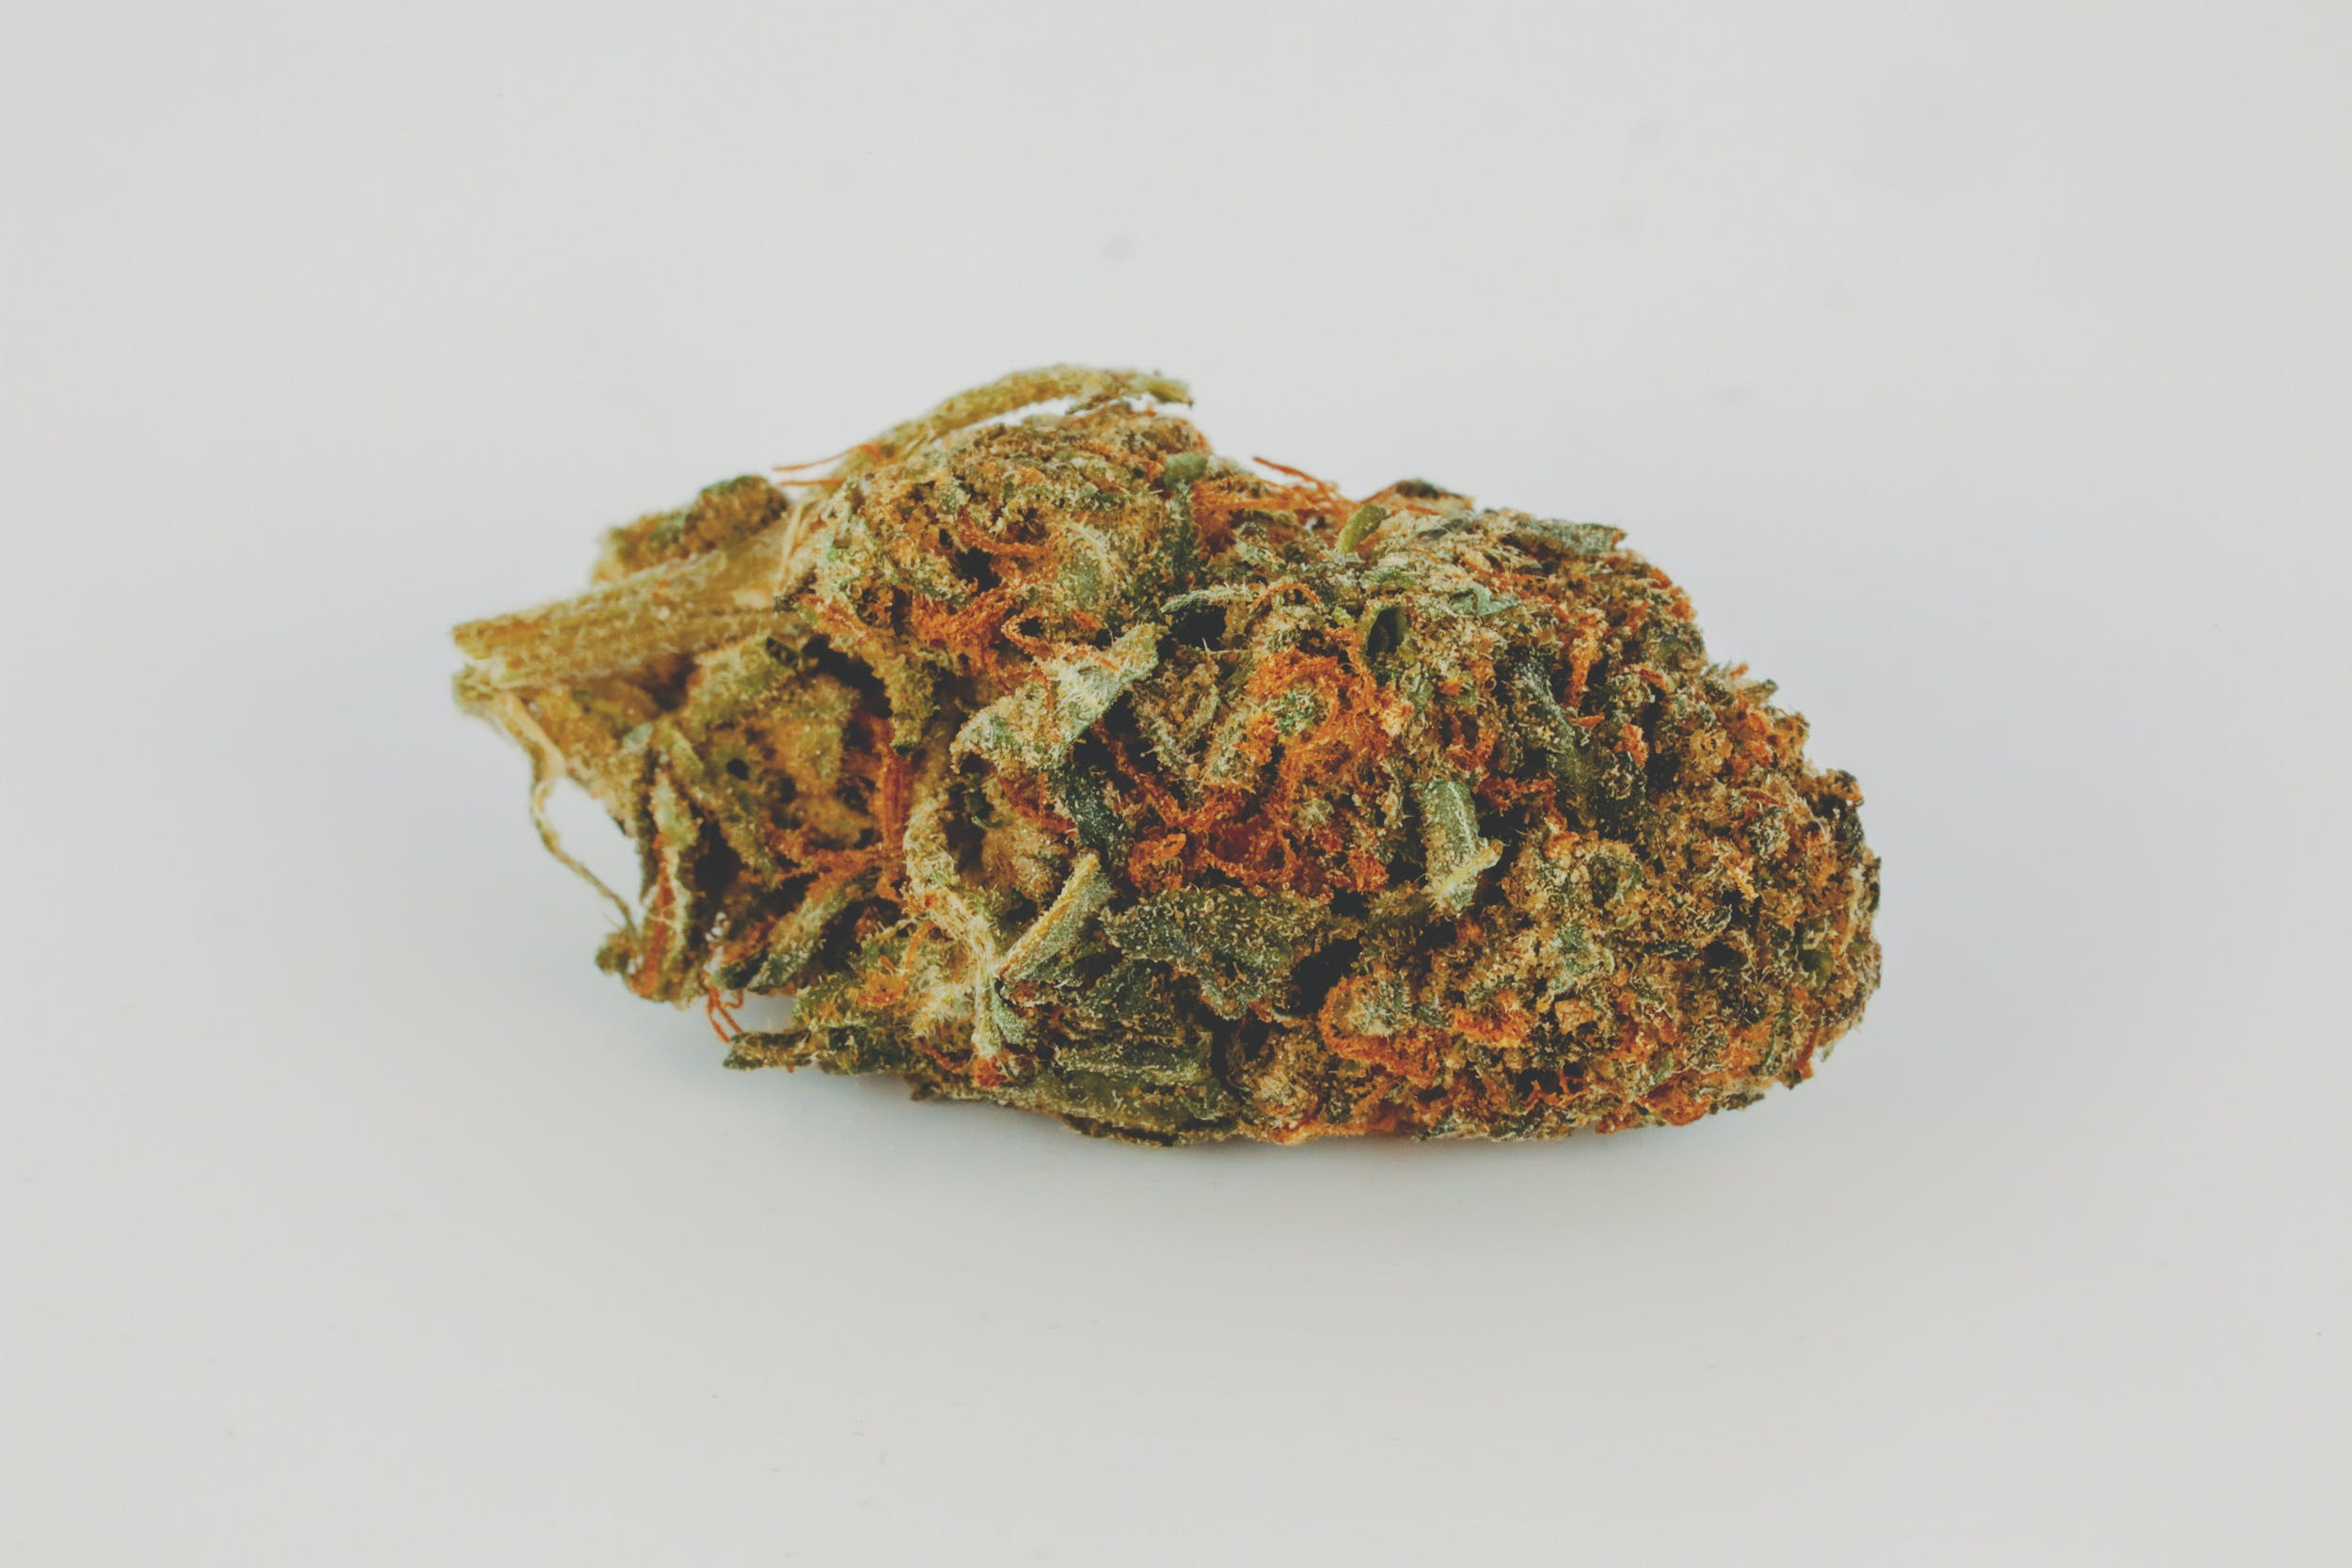 0G8A2811 These are the Best Weed Strains in the World